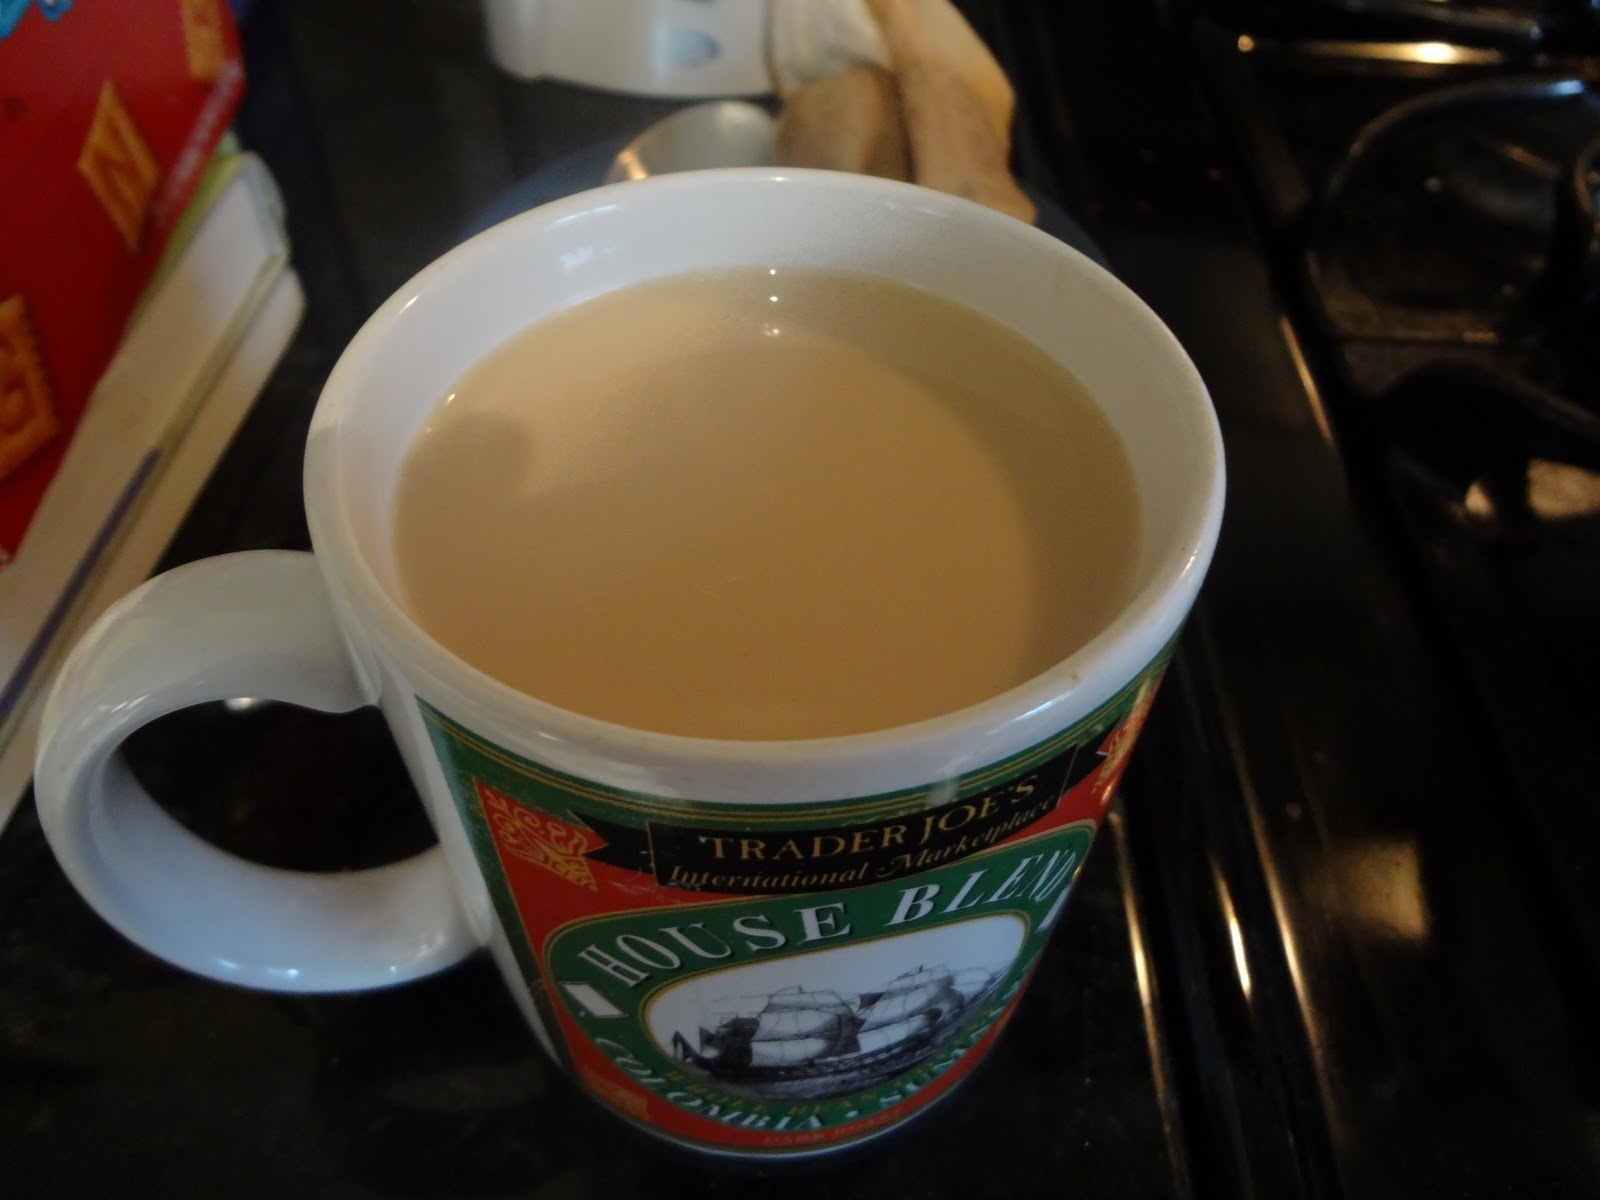 How To Make A Mug Of Coffee With Out The Plastic Toxins In Makers This Recipe Is So Simple And It Old Way Making Cup Jo